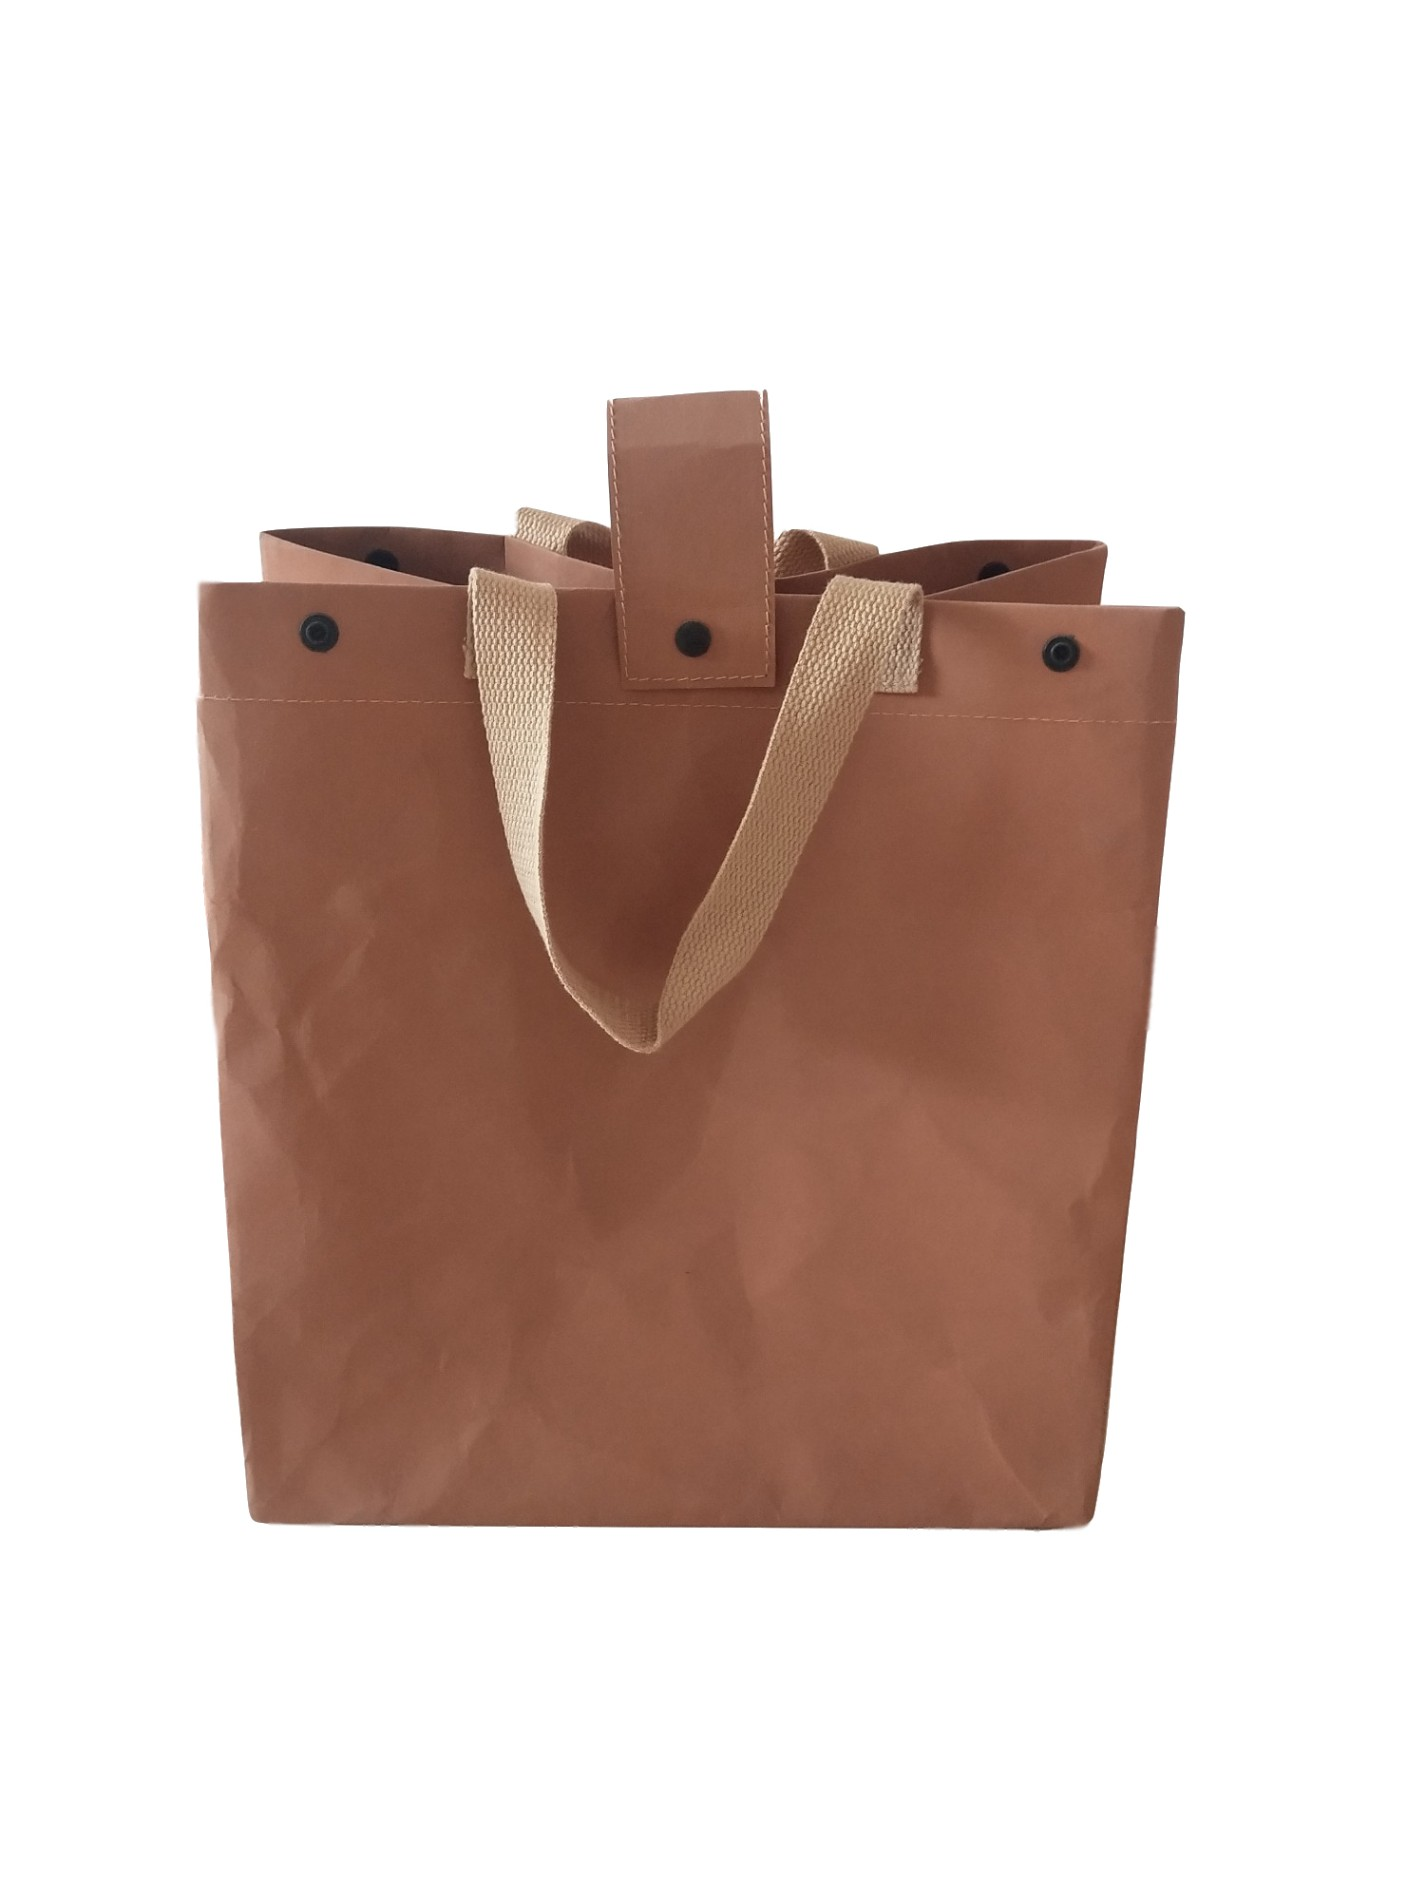 Wholesale Custom Made Promotional Cheap High Quality Brown Paper Bags, Custom Made Promotional Cheap High Quality Brown Paper Bags Manufacturers, Custom Made Promotional Cheap High Quality Brown Paper Bags Producers